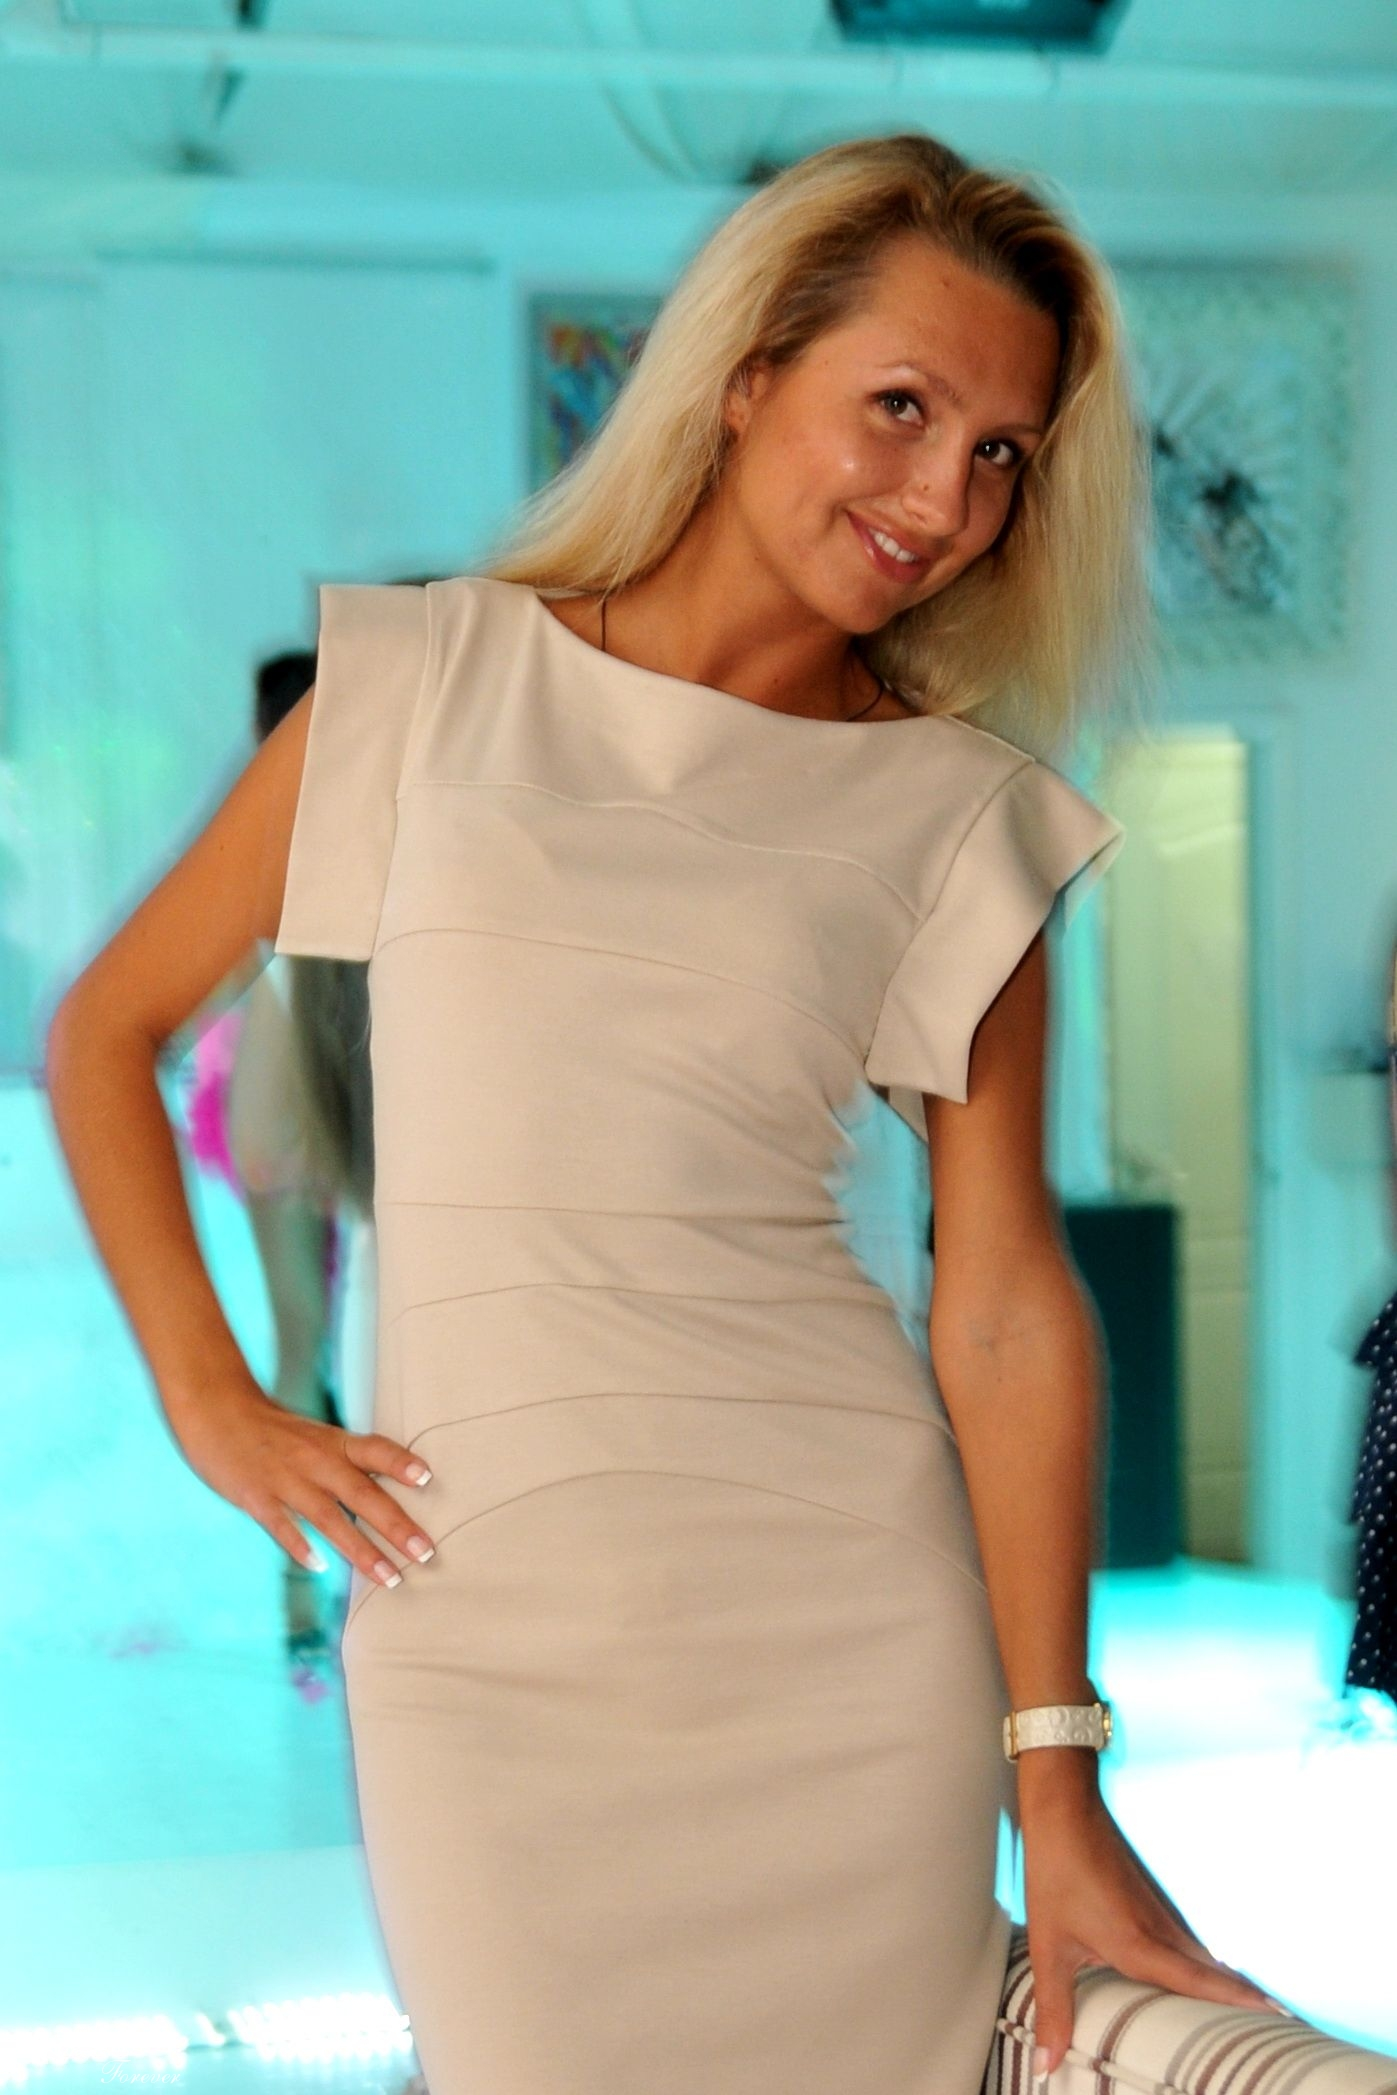 Bikini Ukraine brides :: Sexy girls for marriage